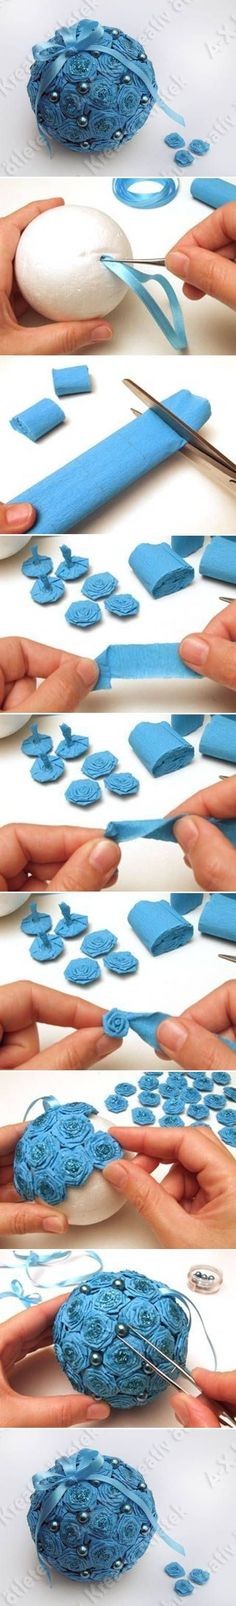 How to make Crepe Paper Flower Ball step by step DIY tutorial instructions / How To Instructions